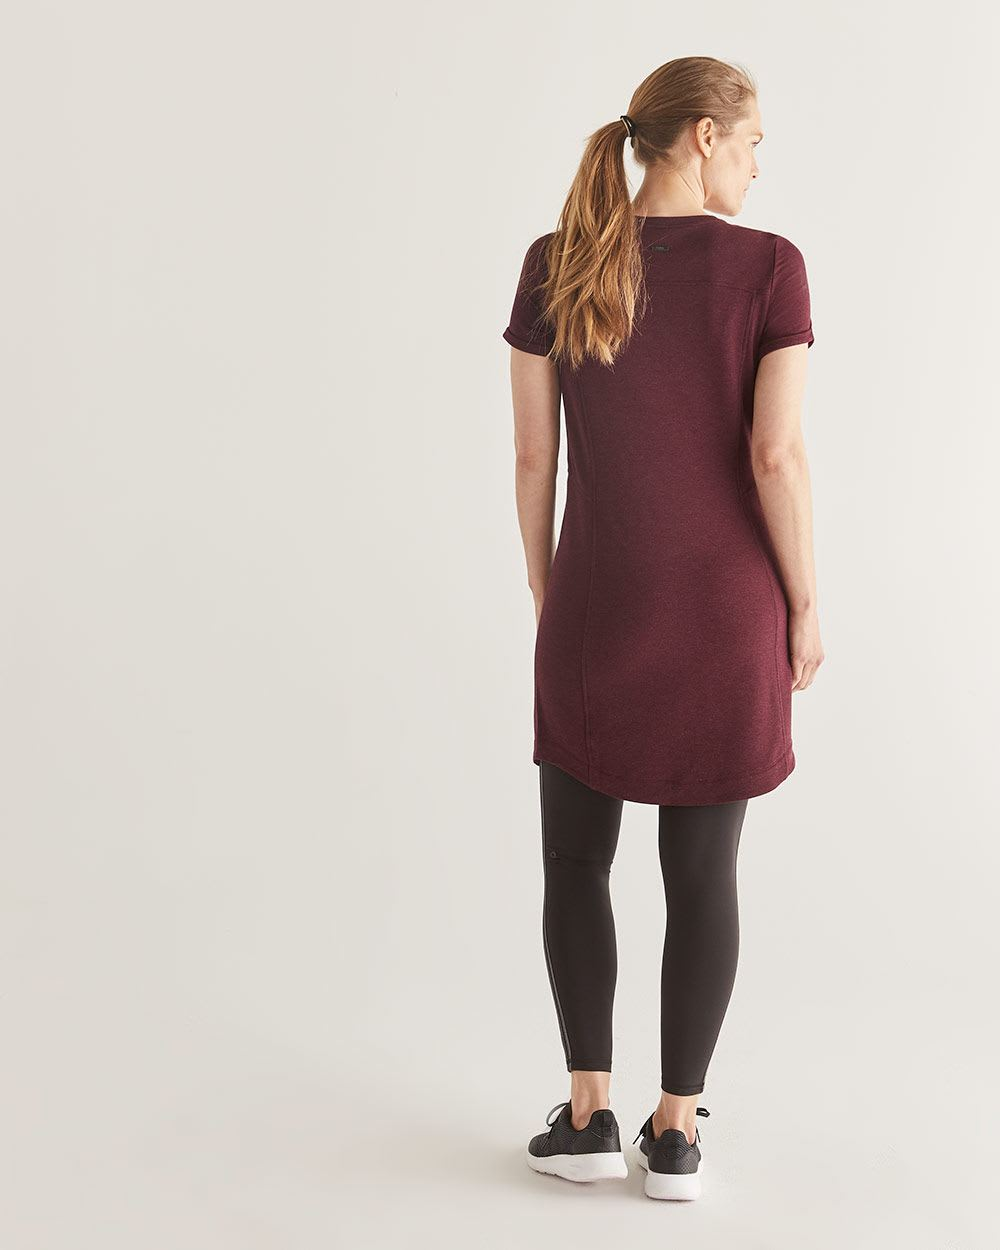 Hyba French Terry T-Shirt Dress with Pockets